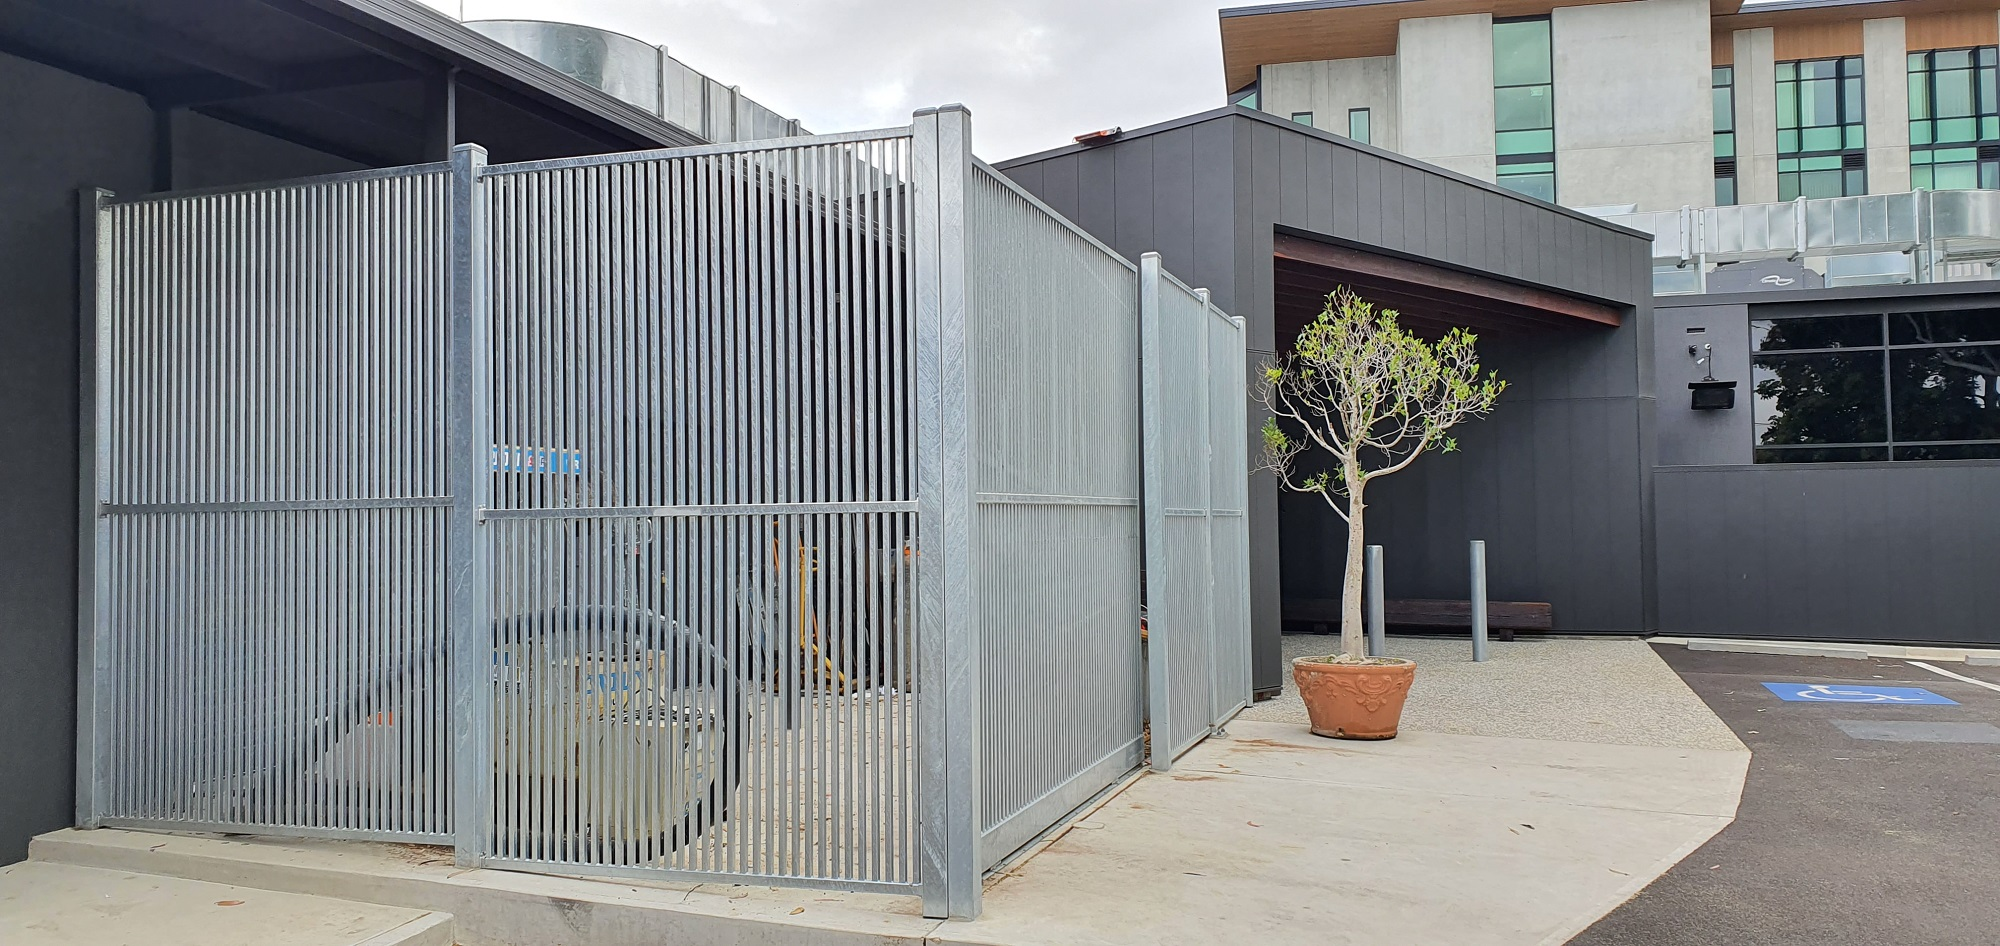 Commercial Fencing Adelaide Fence Centre Hotel Storage Closure Fencing 2